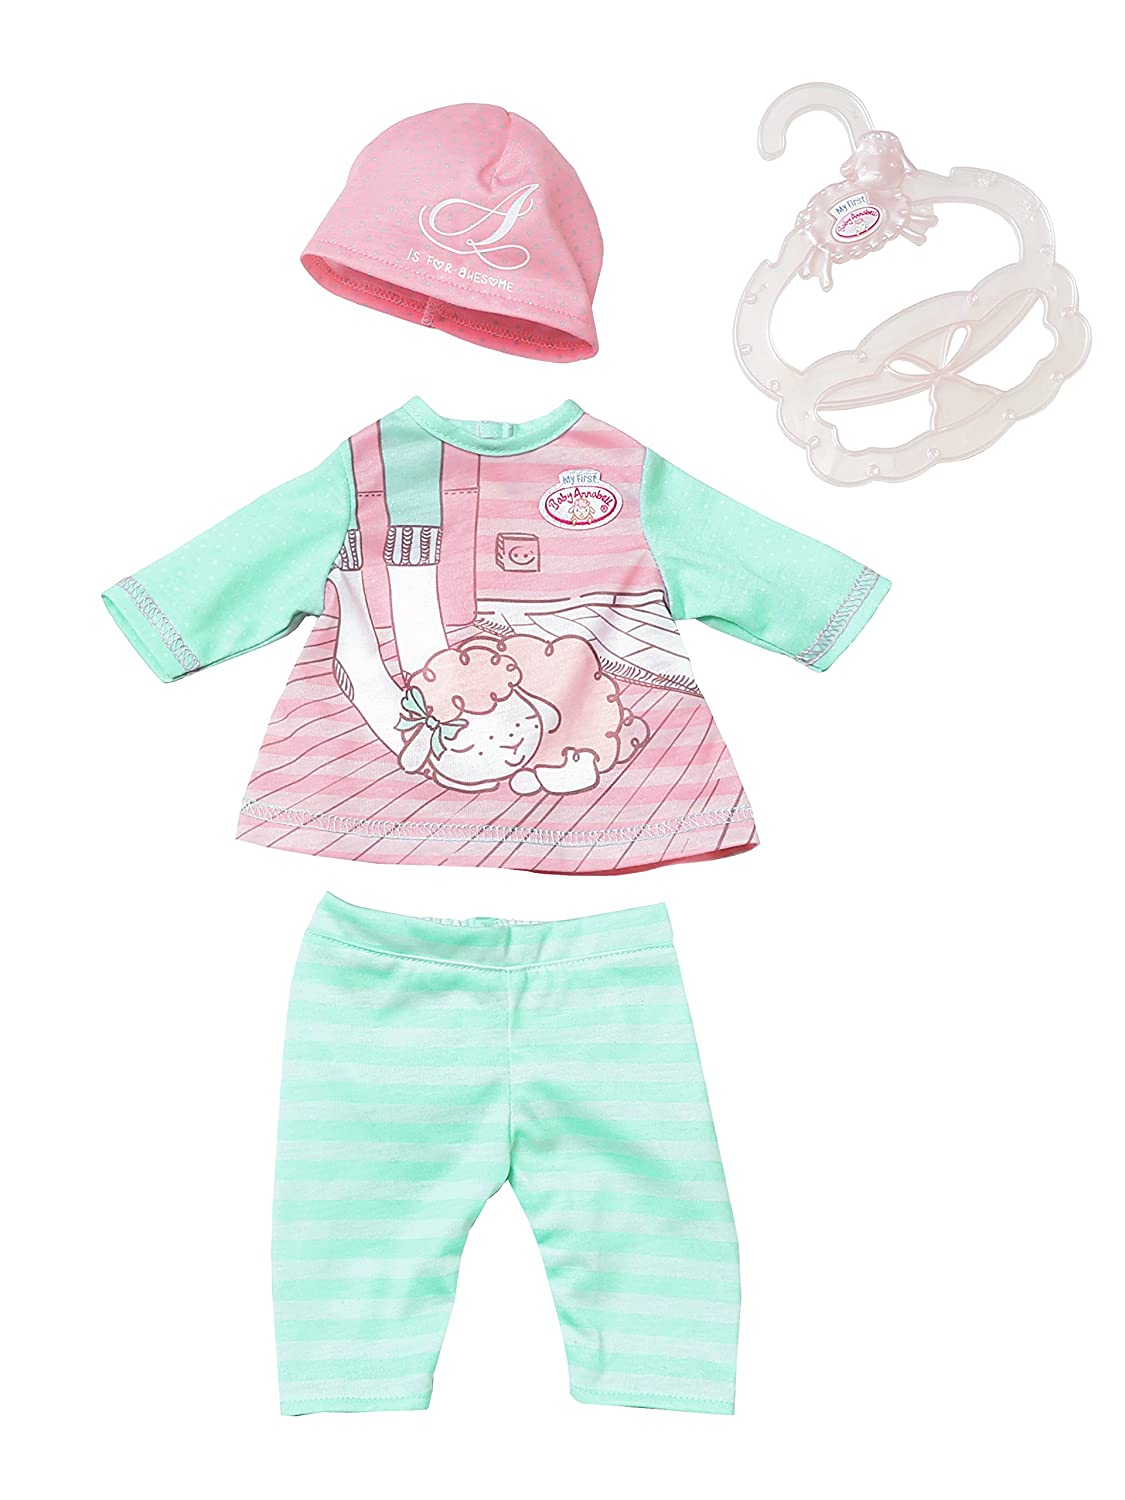 Zapf Creation 700570 My First Baby Annabell Baby Outfit